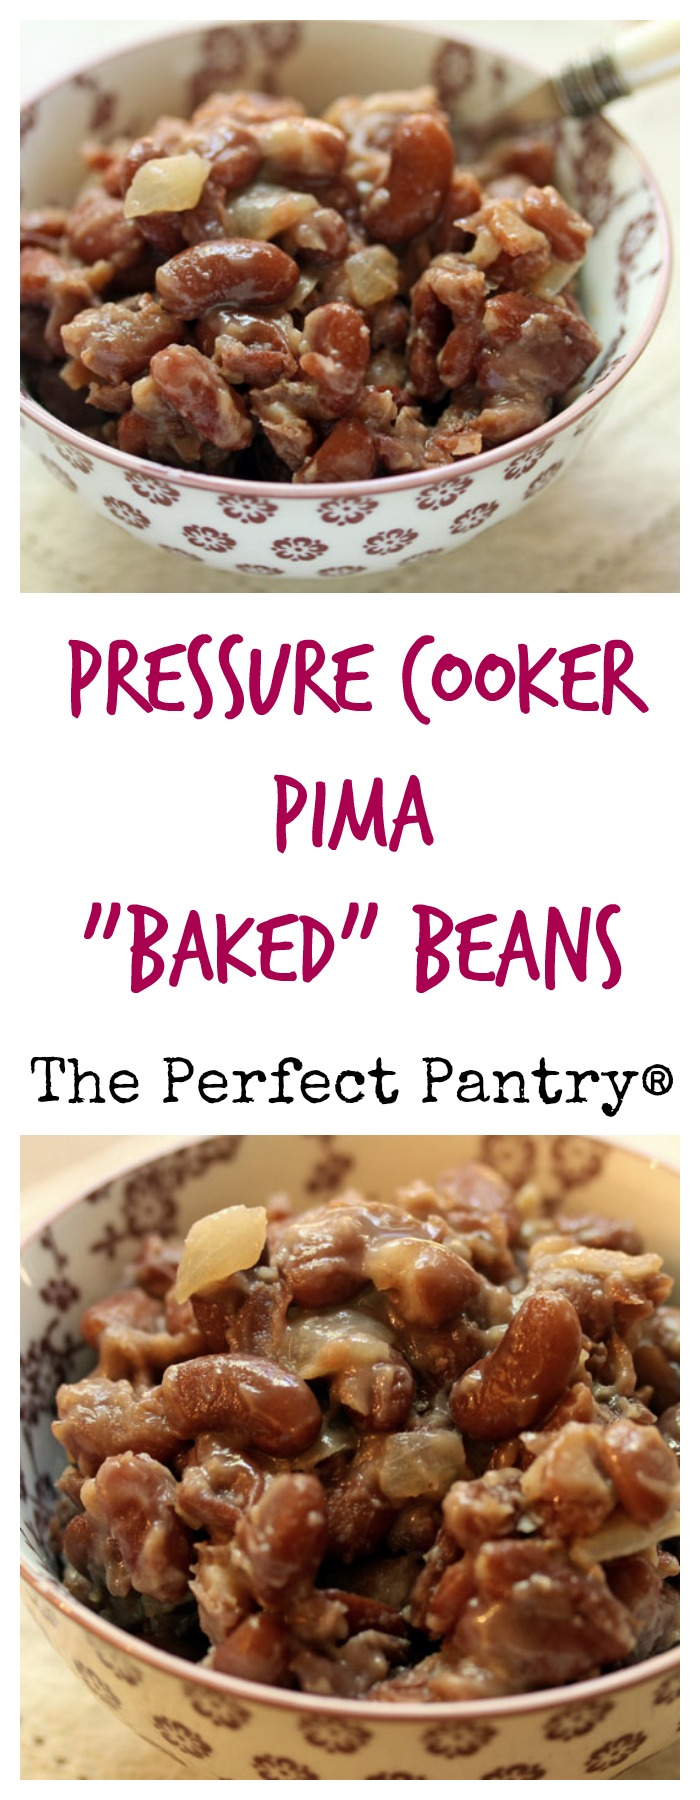 ... baked beans, a Native American recipe made easy in the pressure cooker